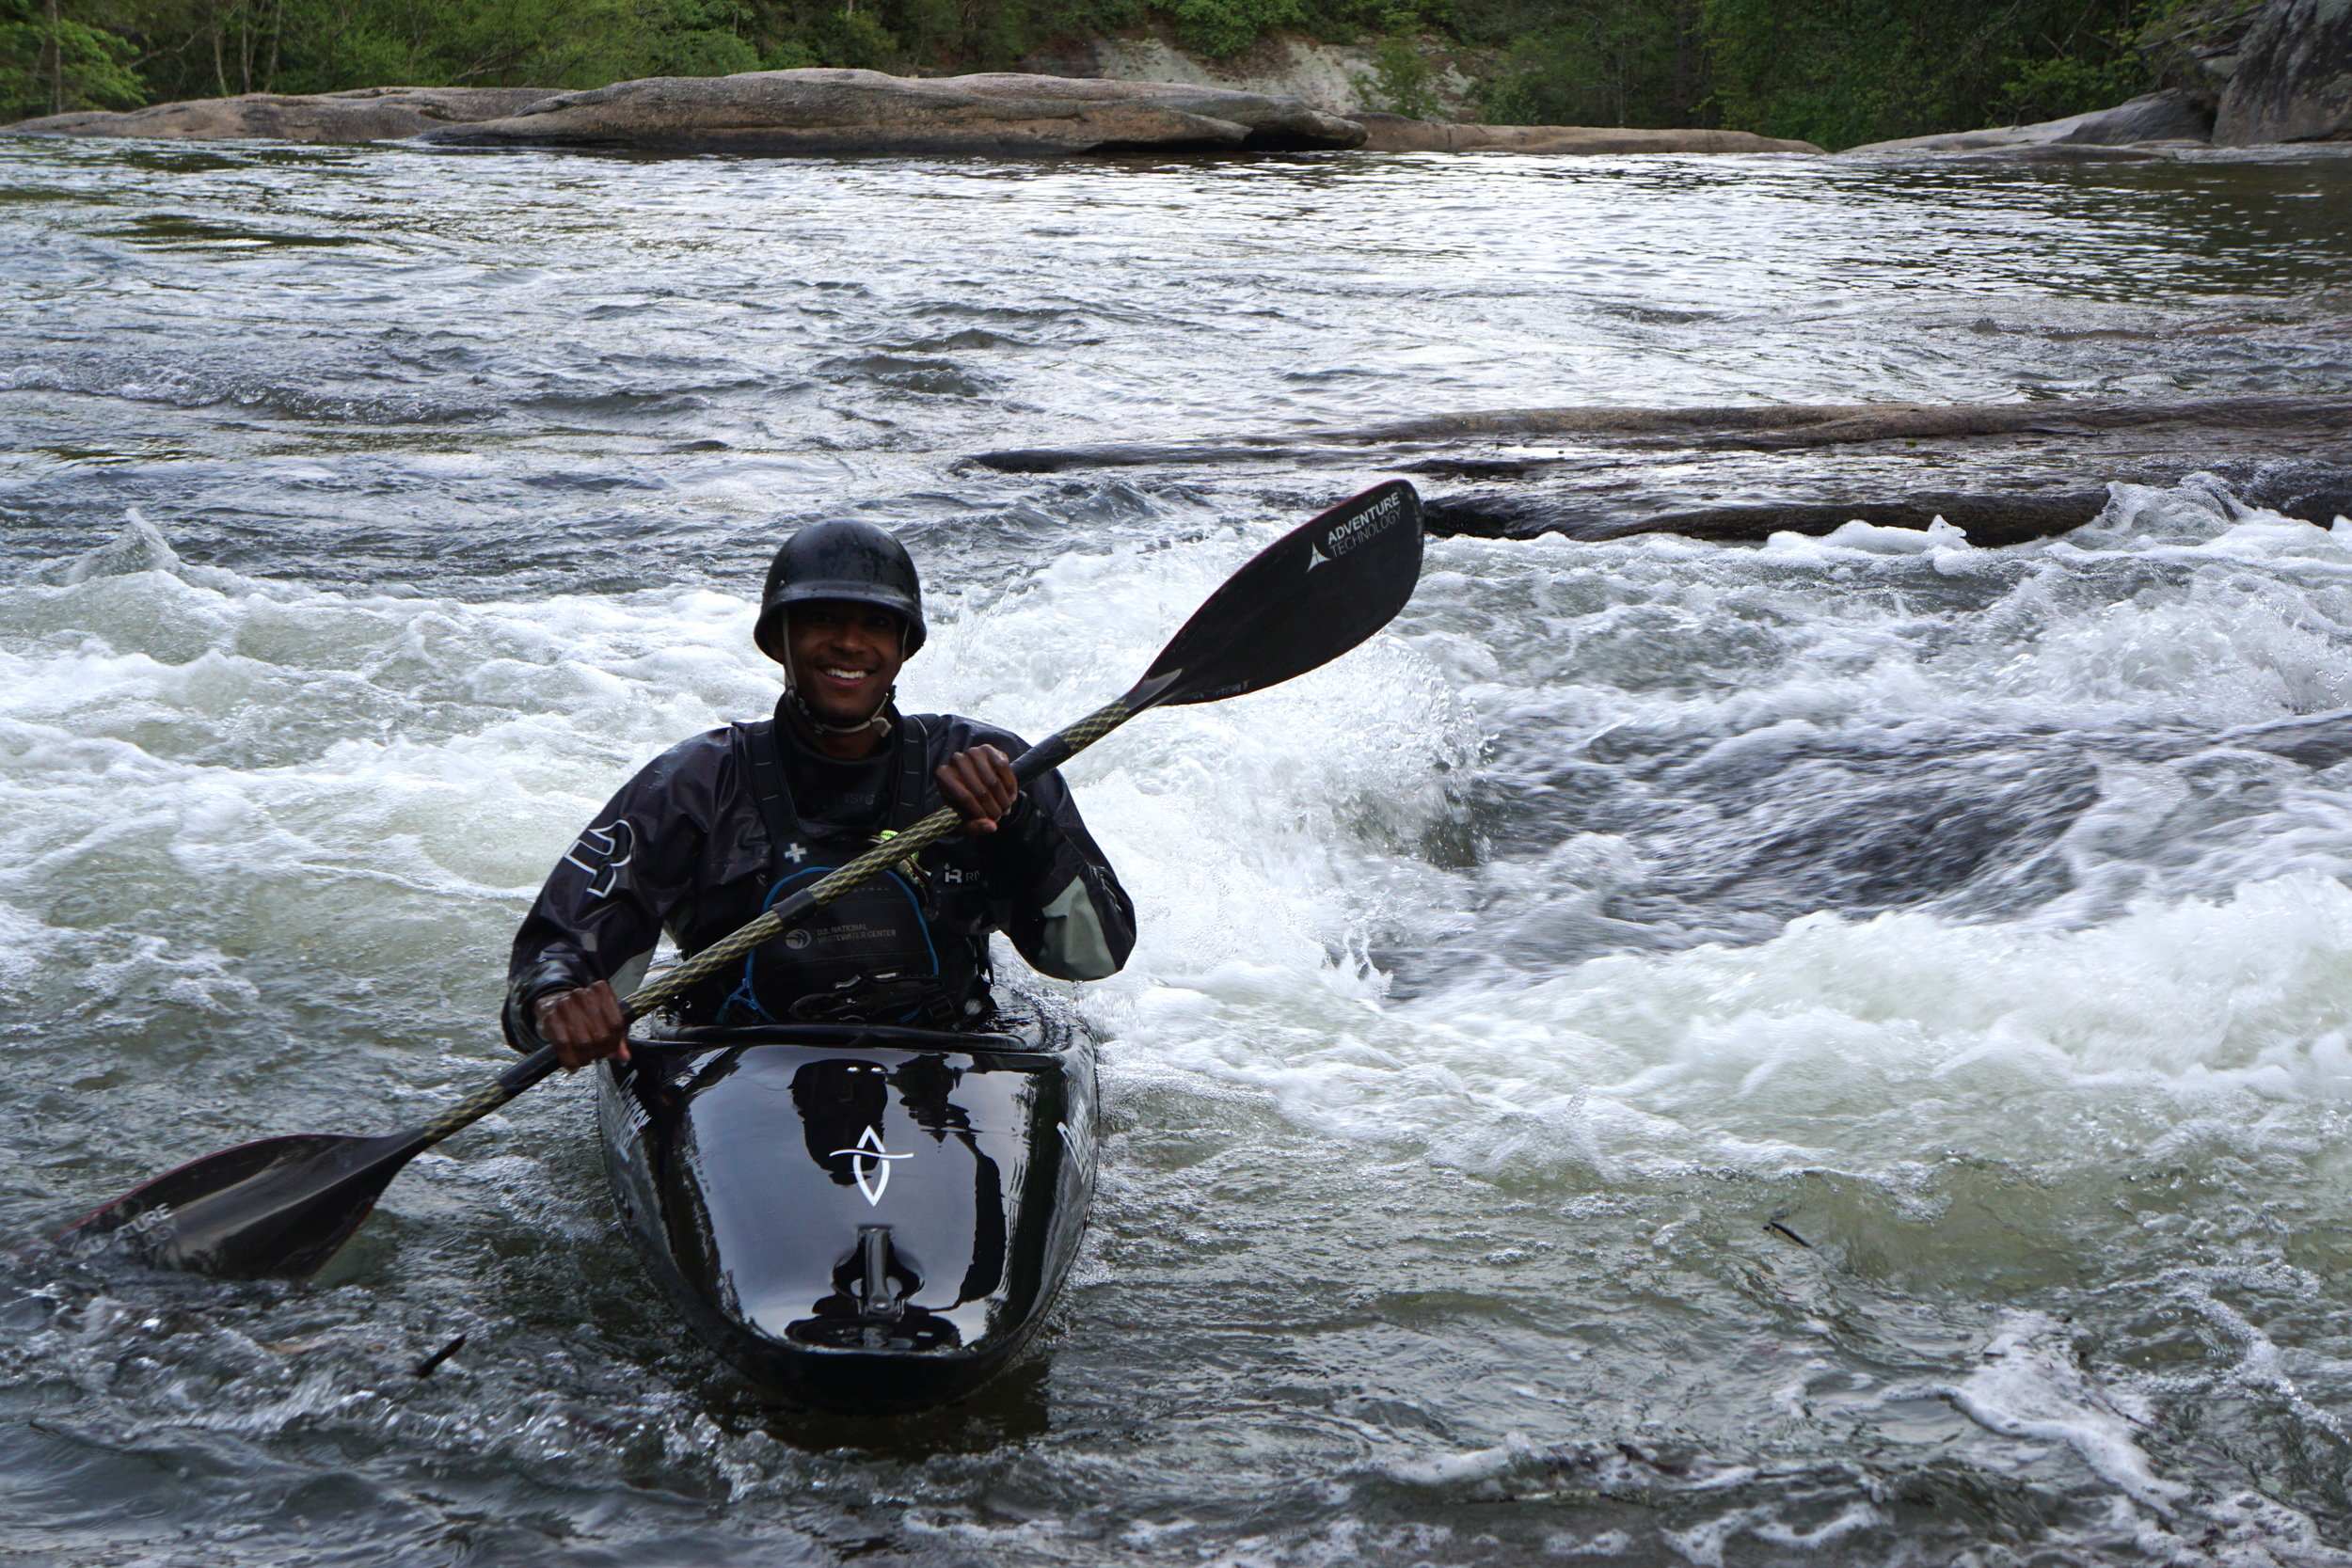 Rashid taking his RPM [radical play machine] out for a spin on the Flat Shoals river in SOuth Carolina. (Photo credit: Amber Popham)